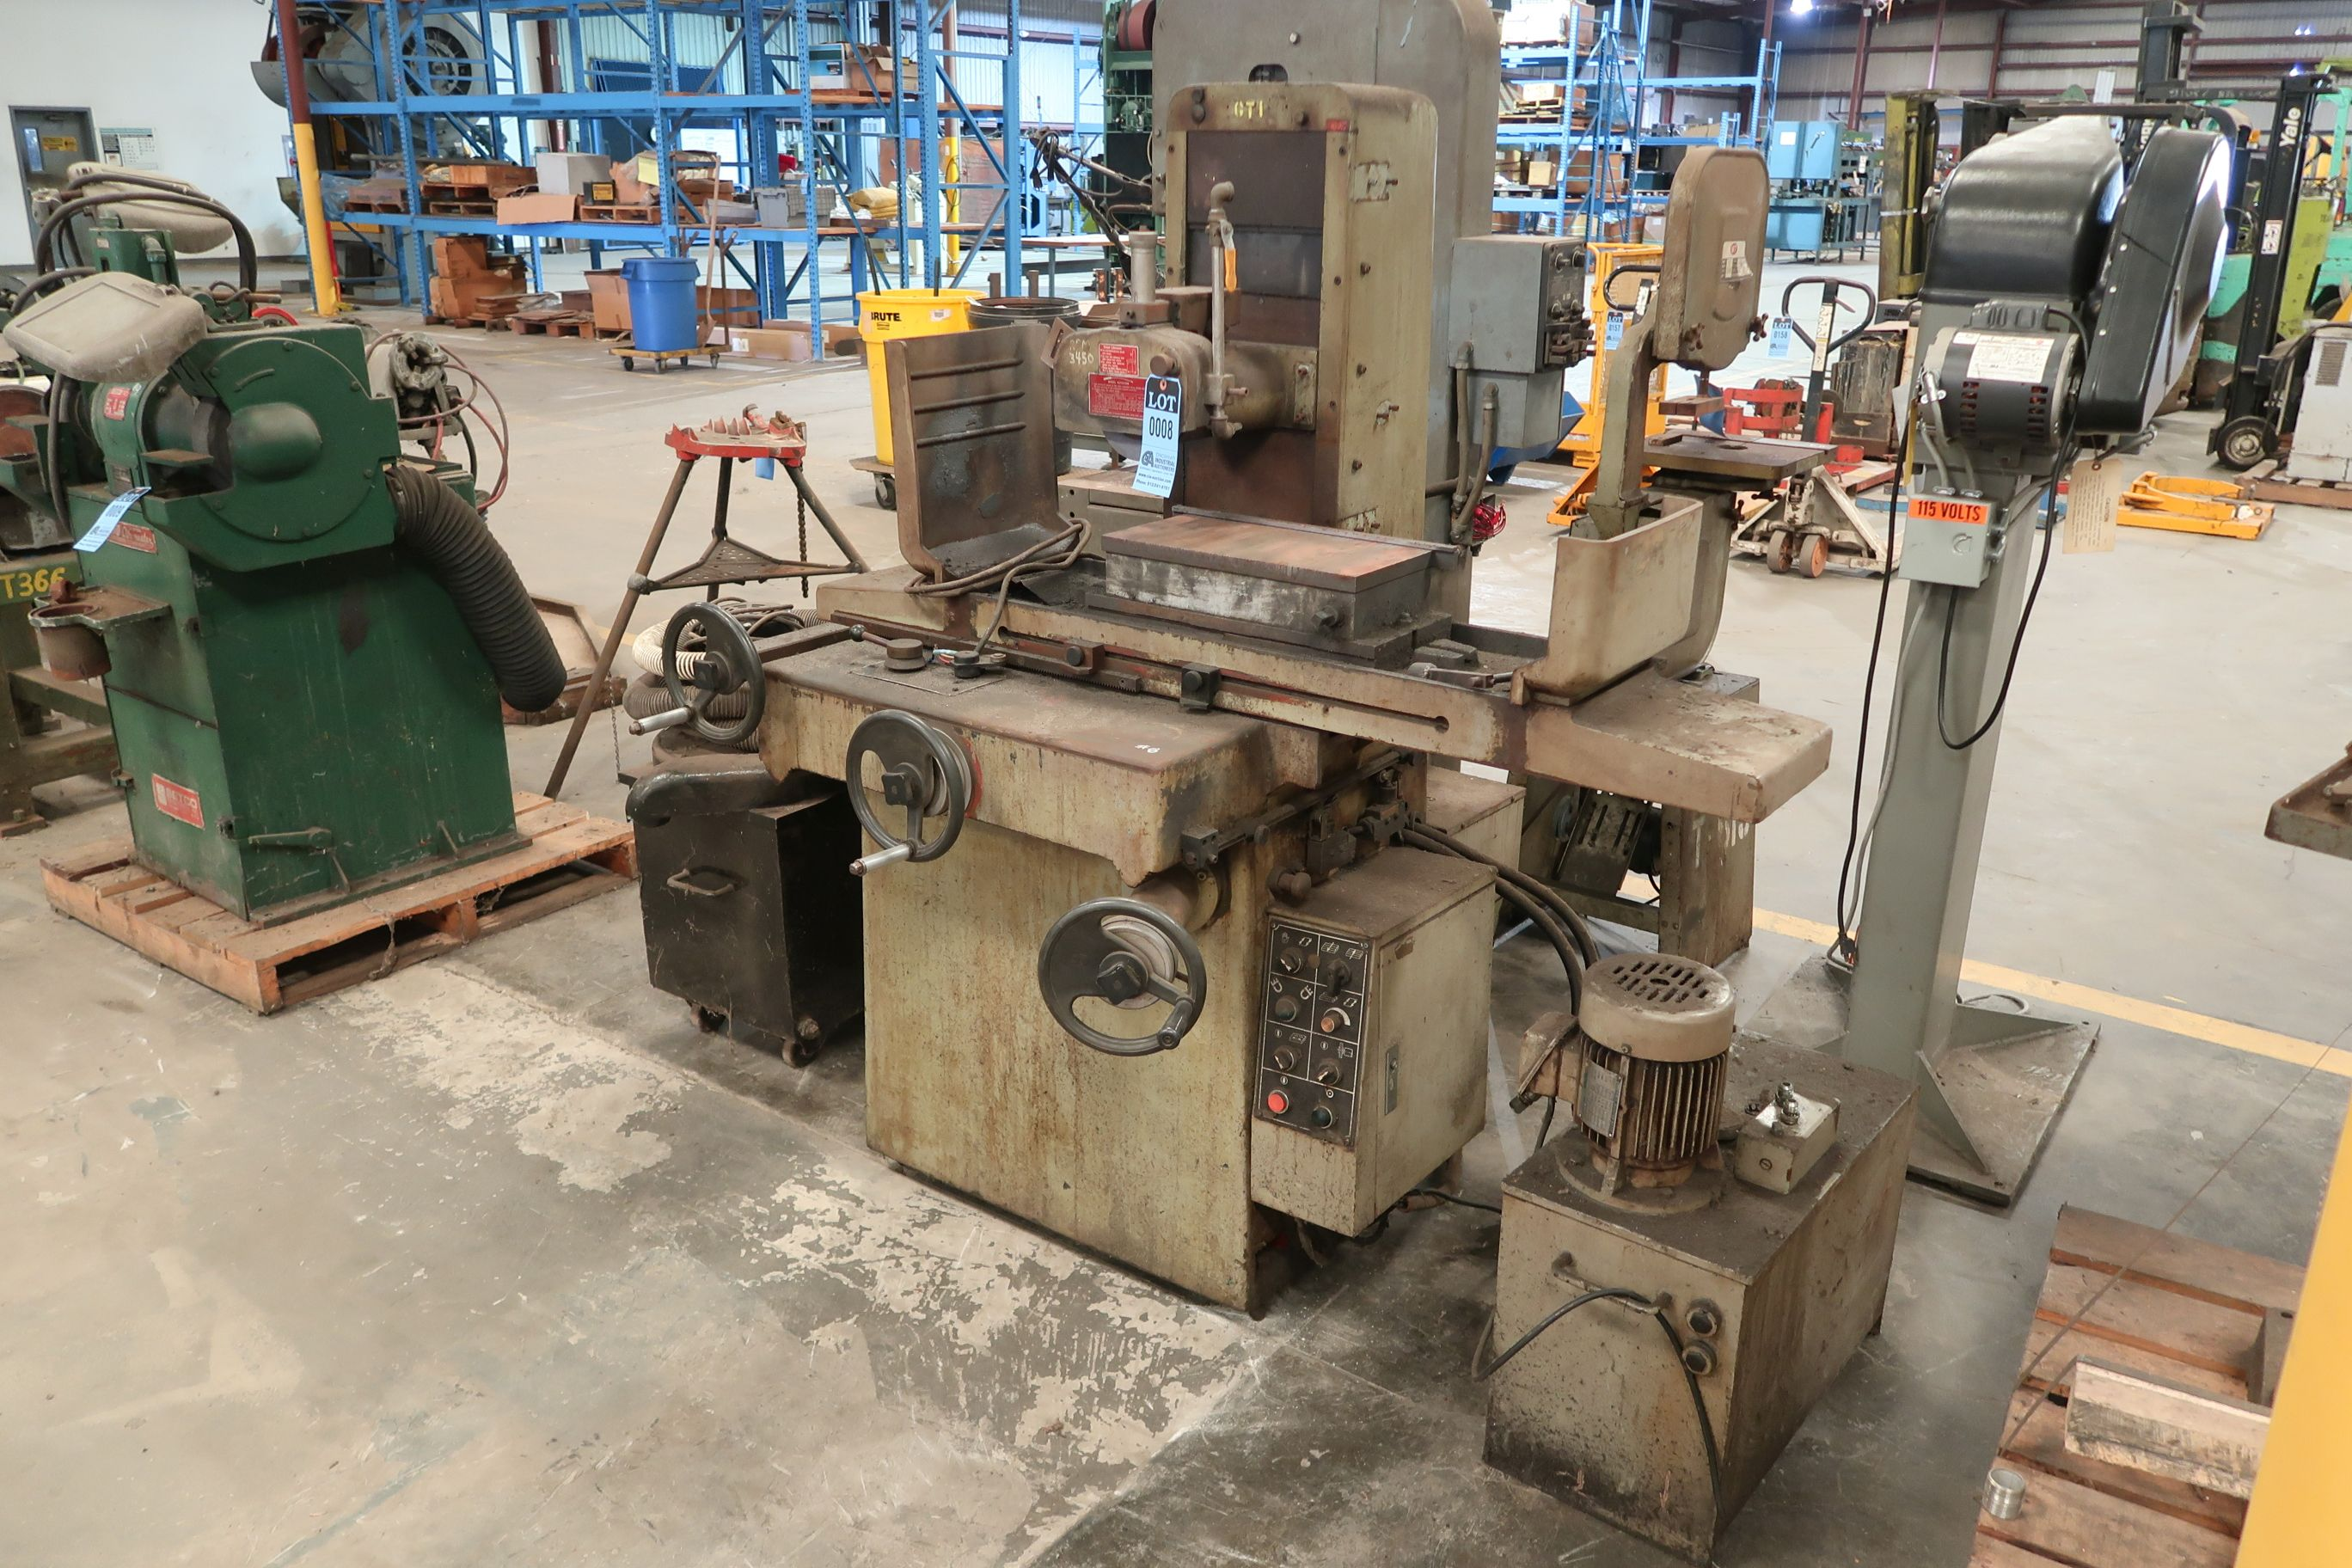 """8"""" X 16"""" KENT MODEL KGS-250AH HYDRAULIC SURFACE GRINDER; S/N 781202-17 WITH DUST COLLECTOR - Image 2 of 7"""